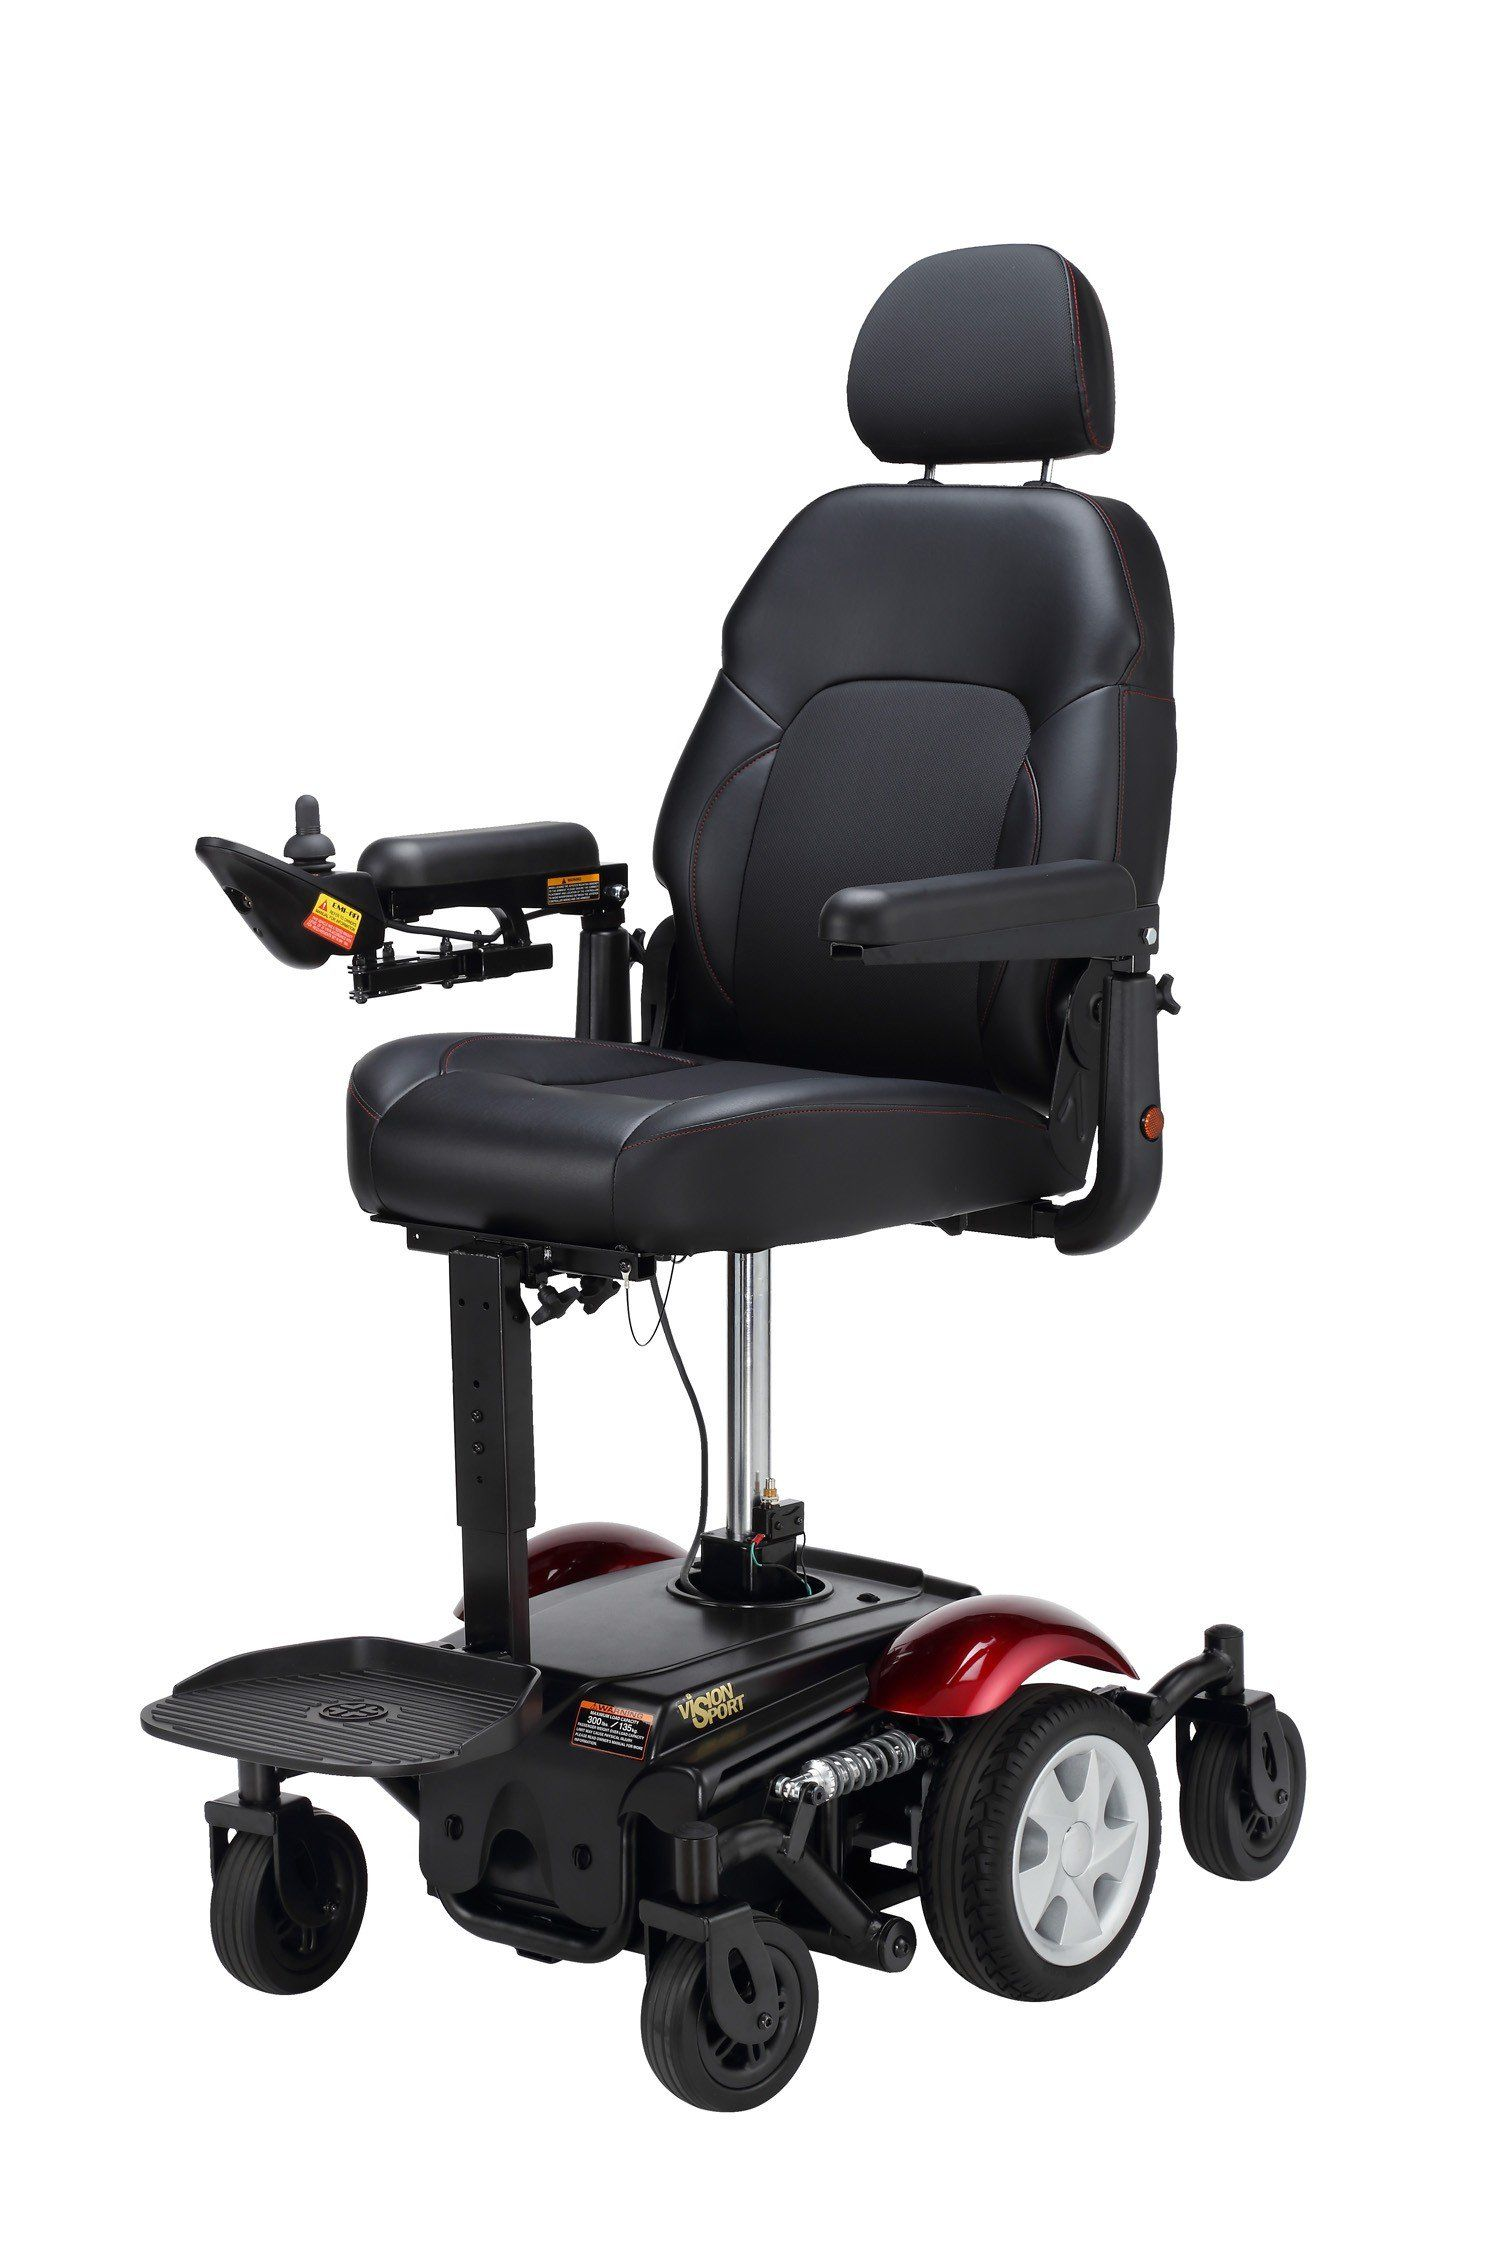 Which wheelchairs offer an elevating seat? The Merits P326D